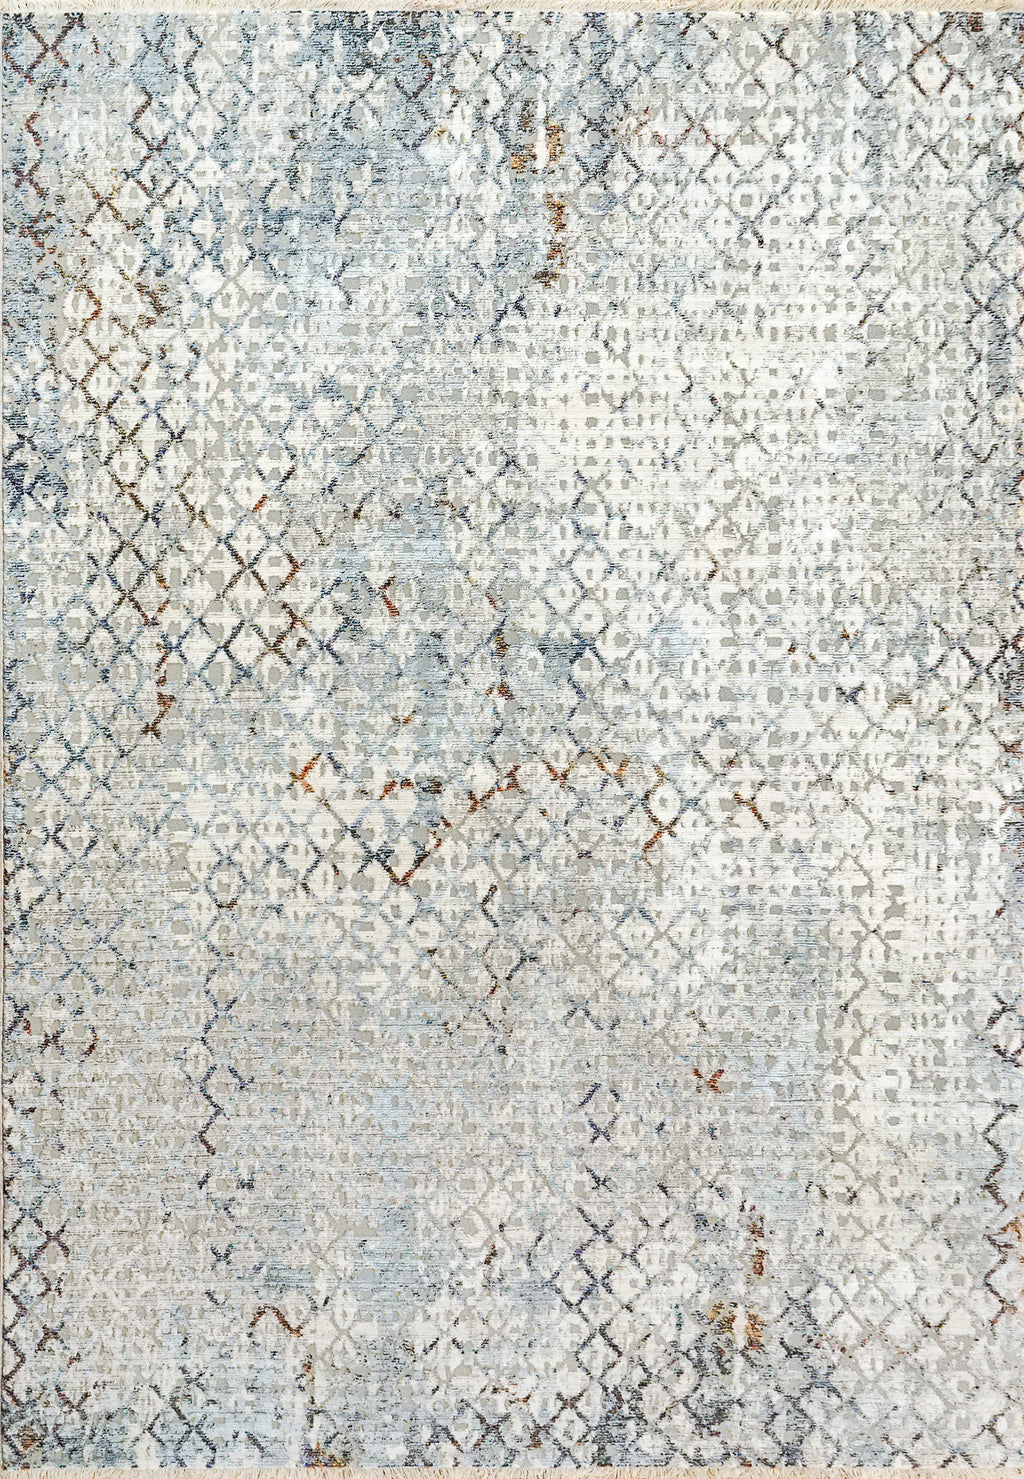 Angelo Surmelis Collection - Alea Rug 1805 (Taupe/Blue/Cream)